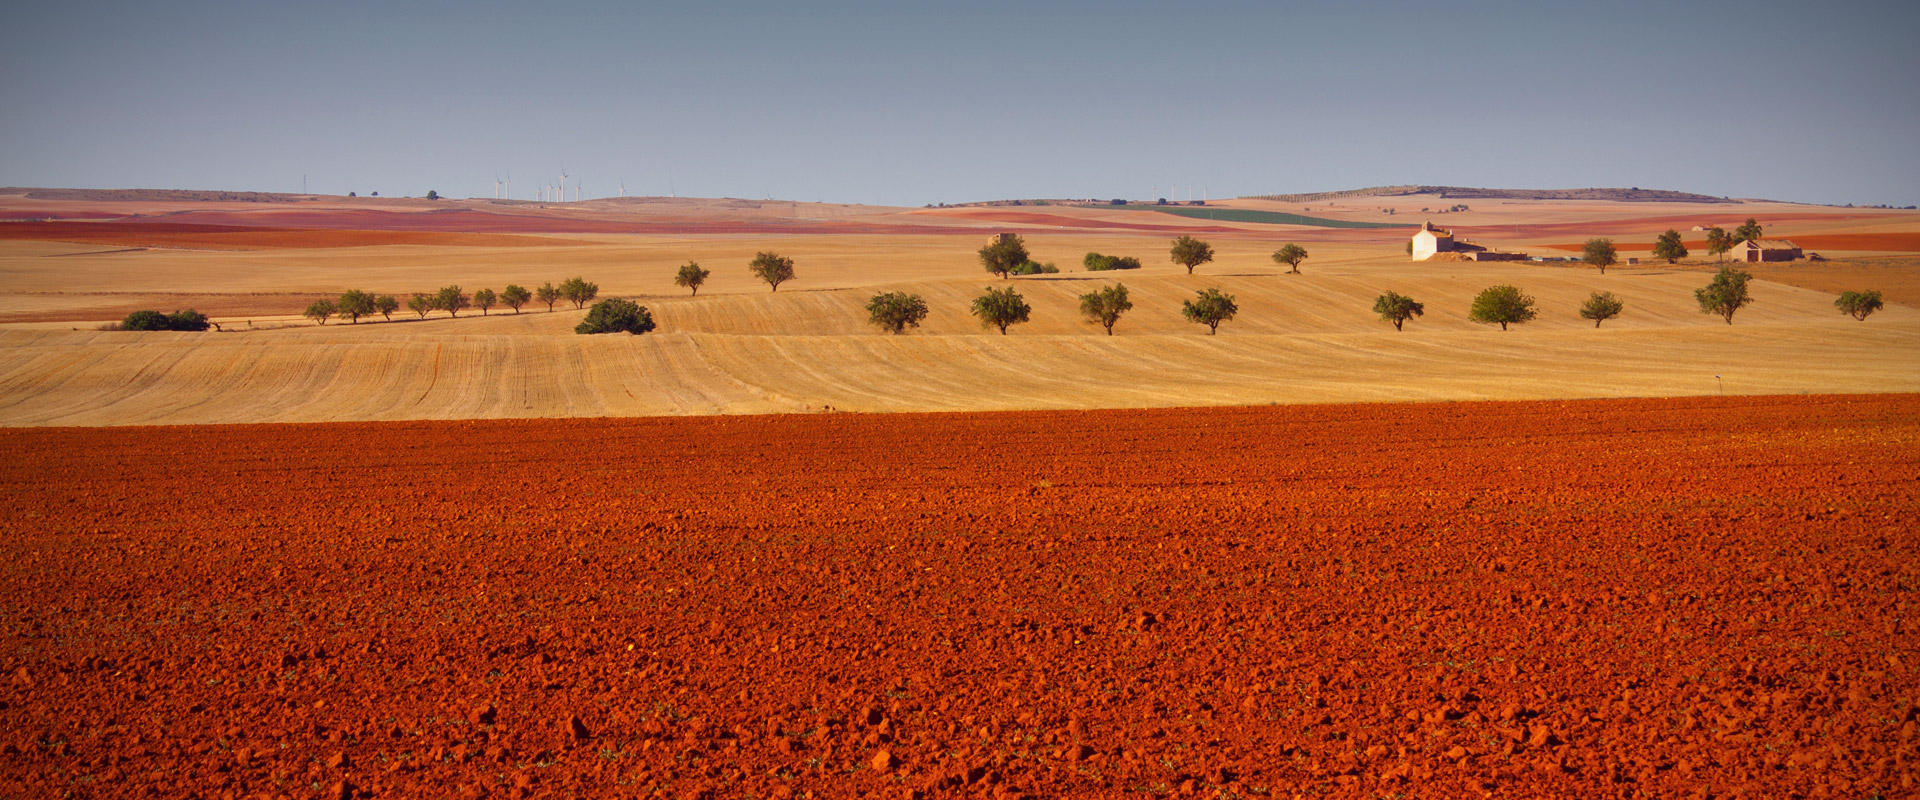 Steppe of cereal inland La Mancha